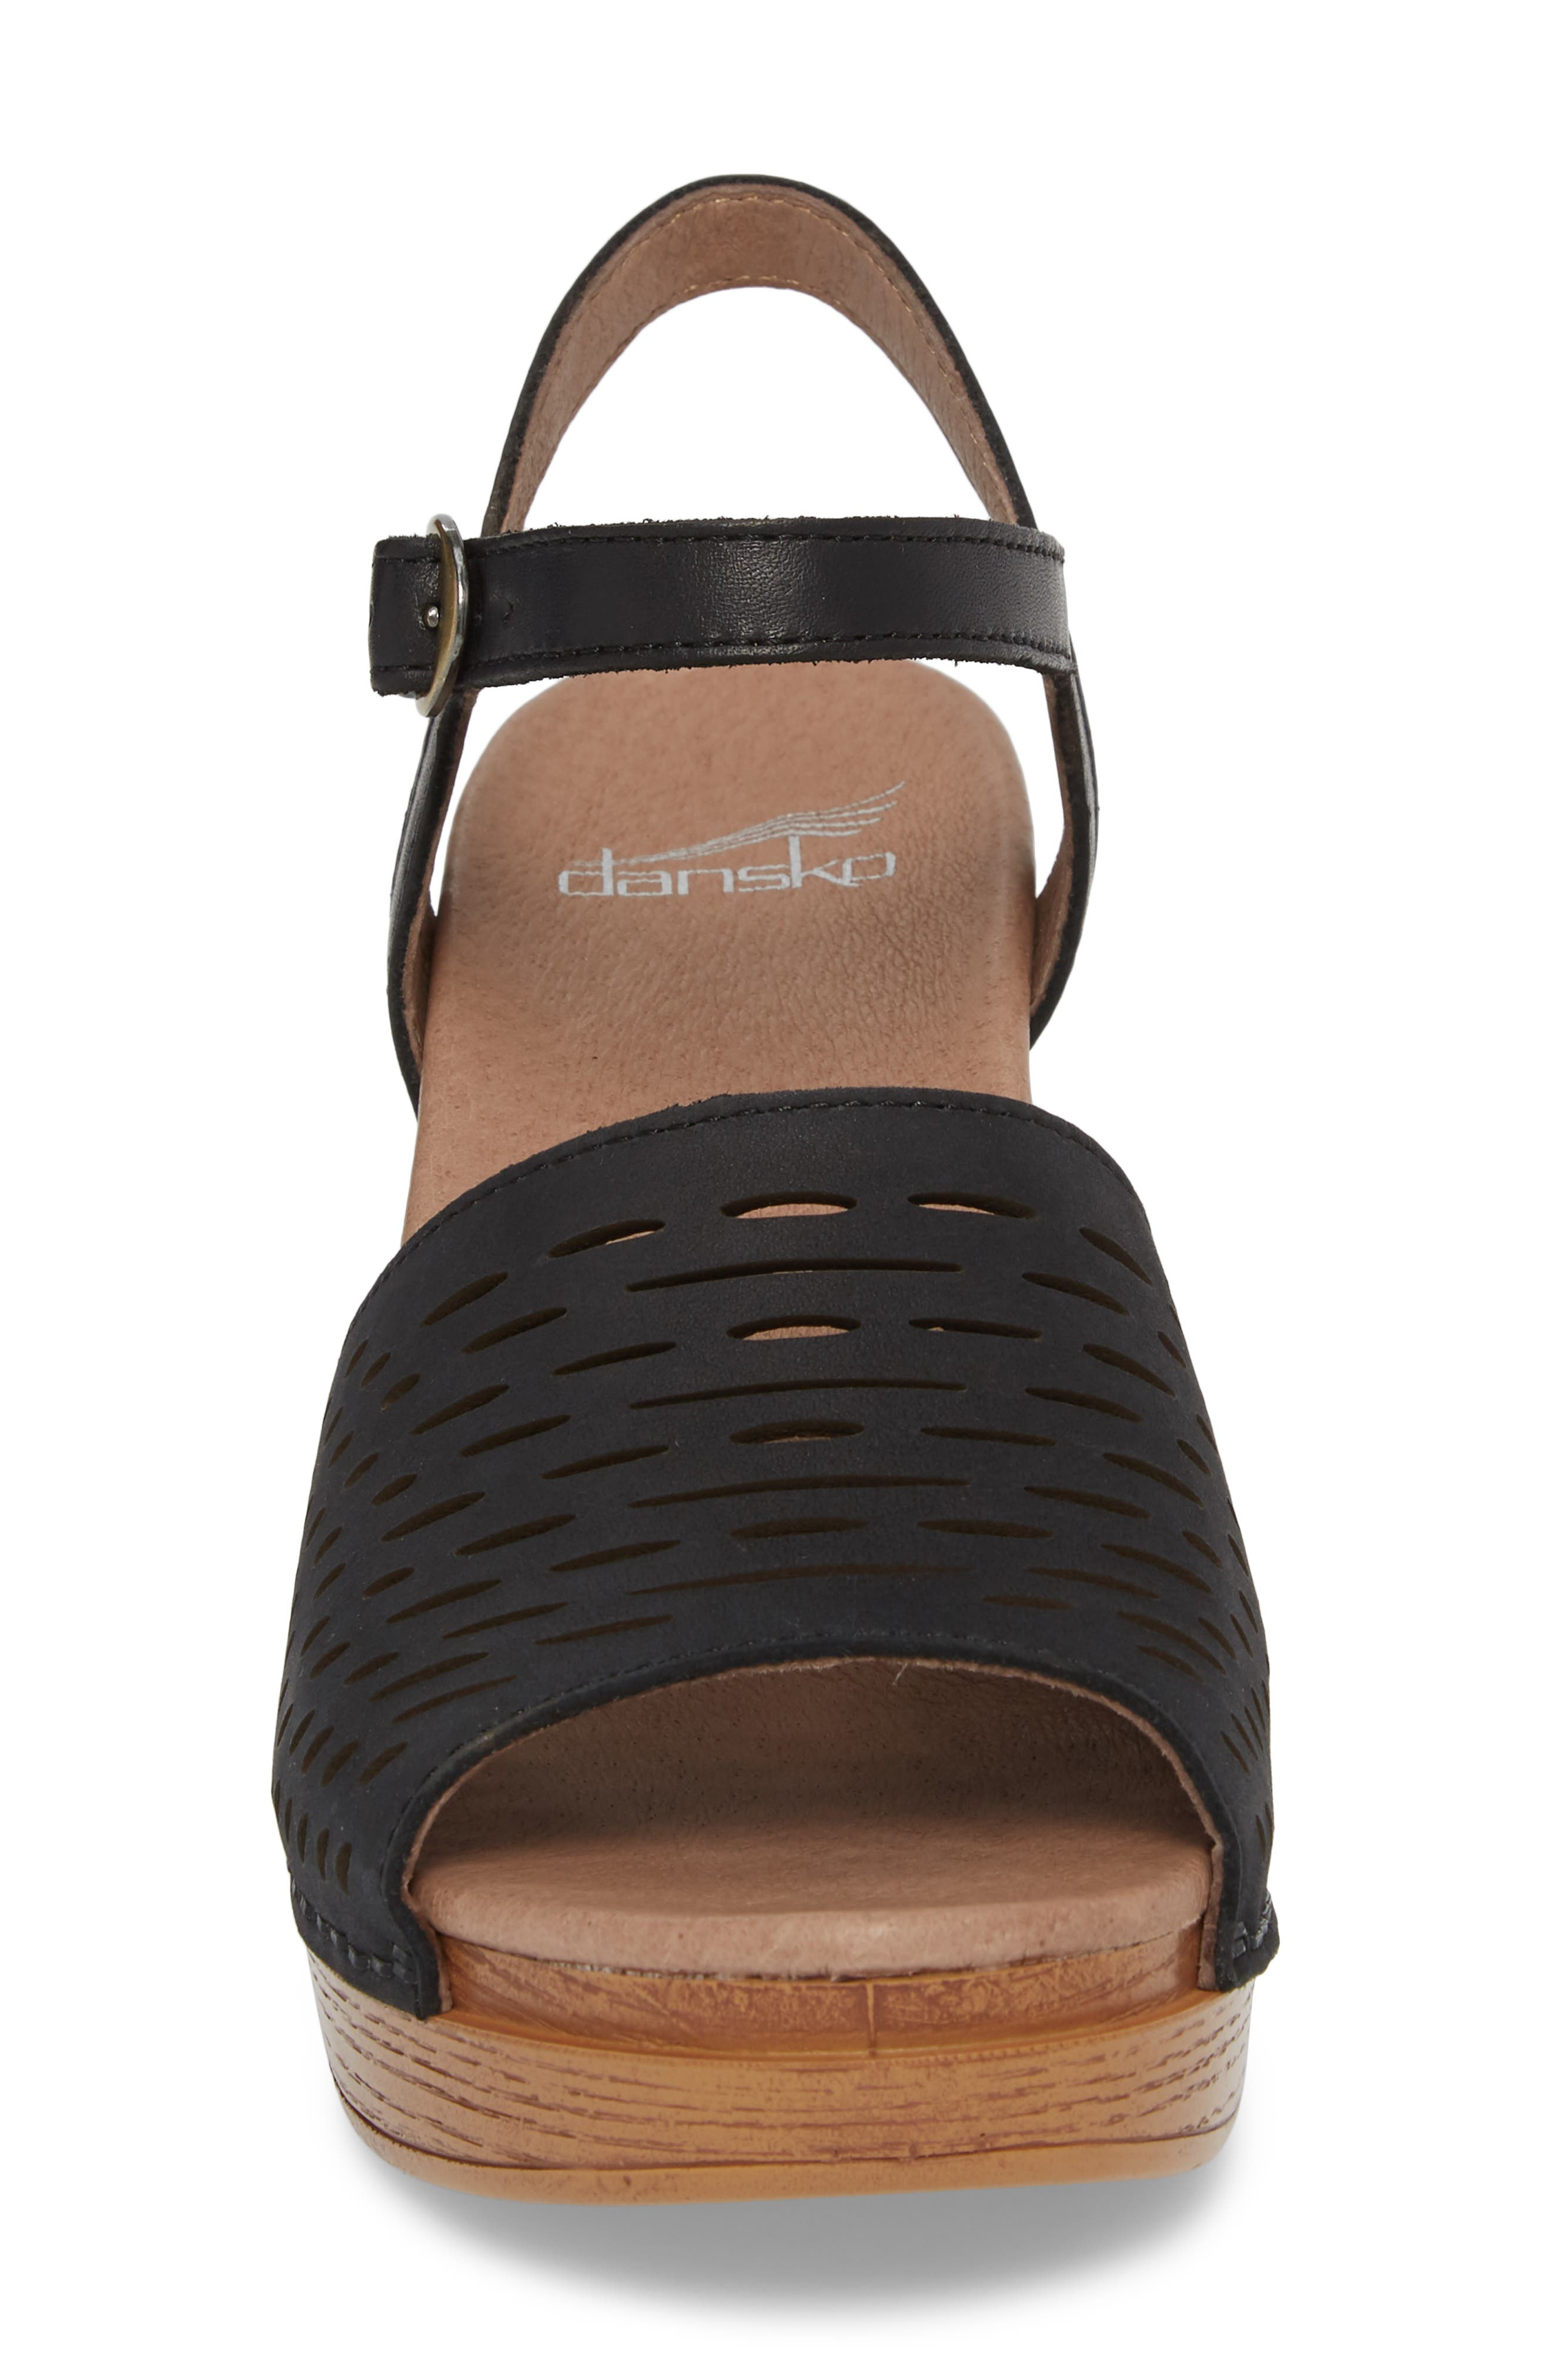 Denita Block Heel Sandal,                             Alternate thumbnail 4, color,                             Black Milled Nubuck Leather